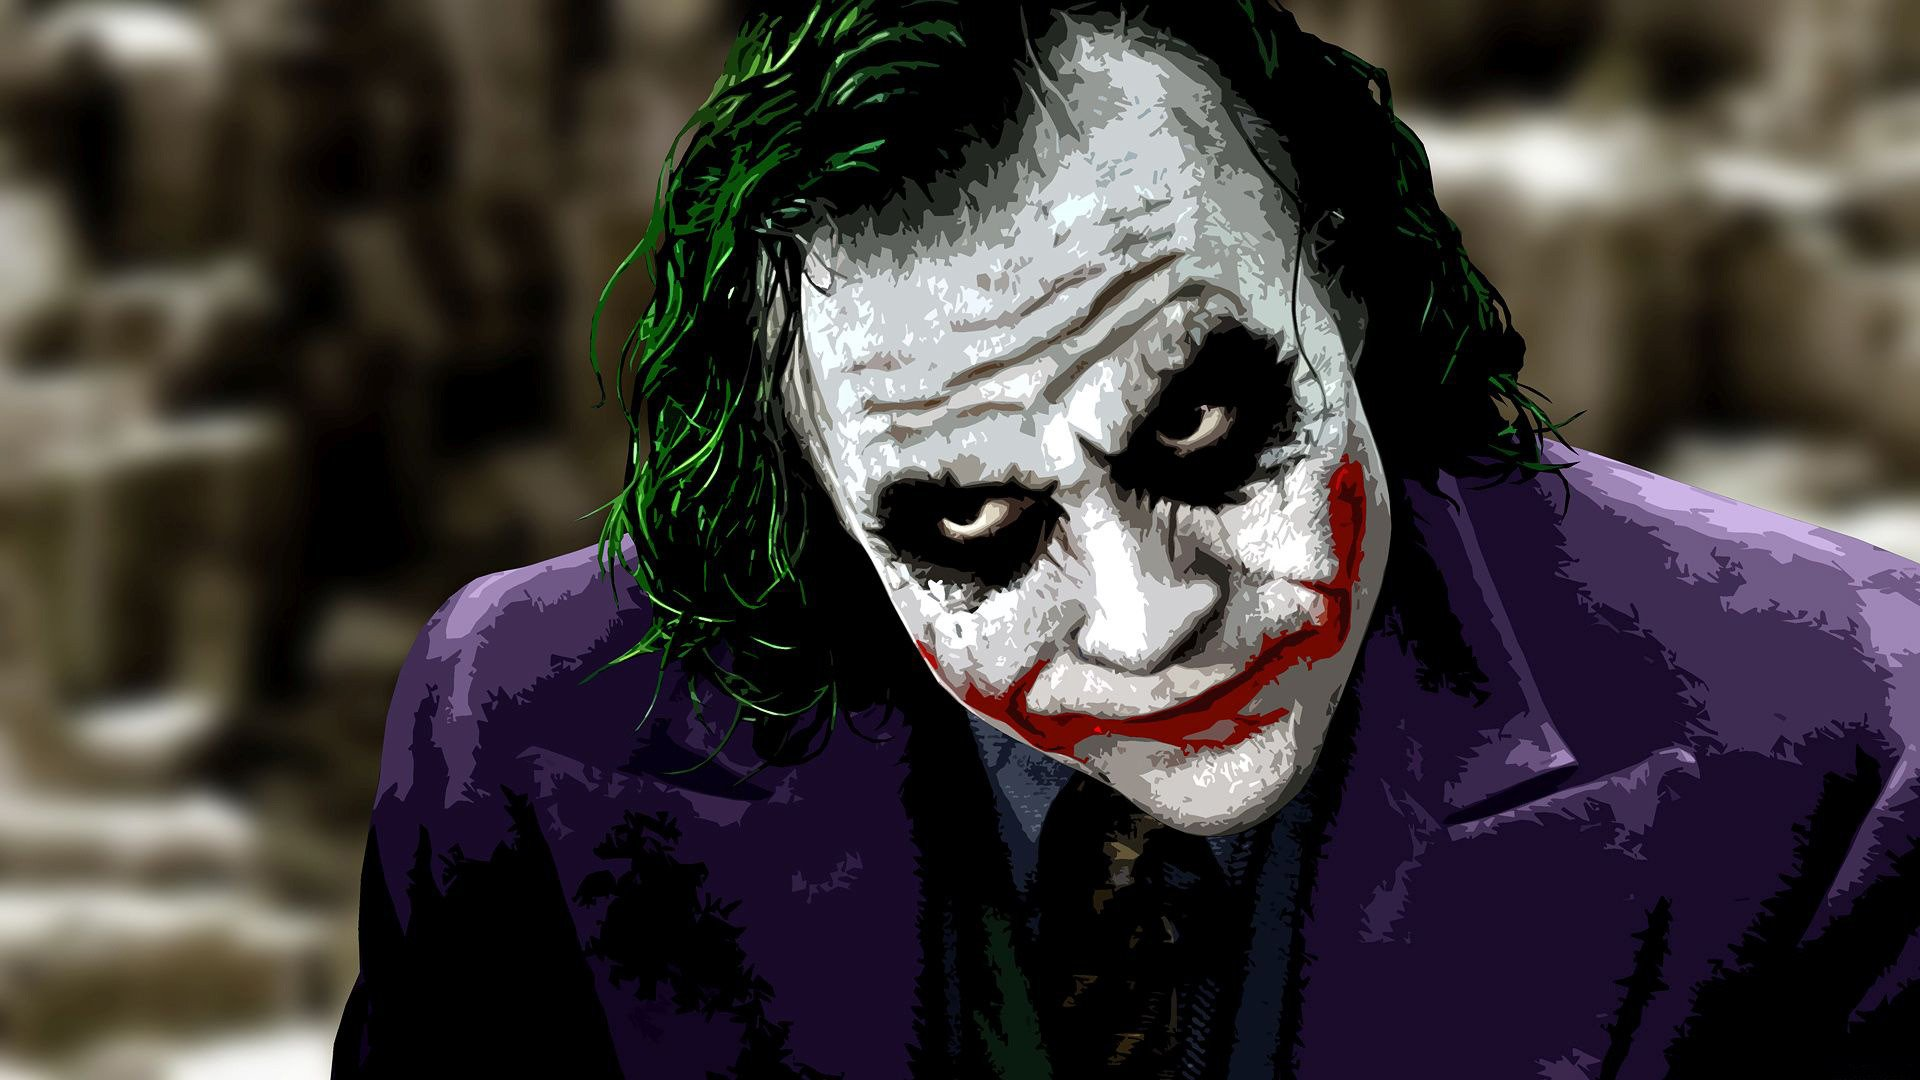 The Yellow Wallpaper Quotes And Analysis Joker Wallpapers Hd Backgrounds